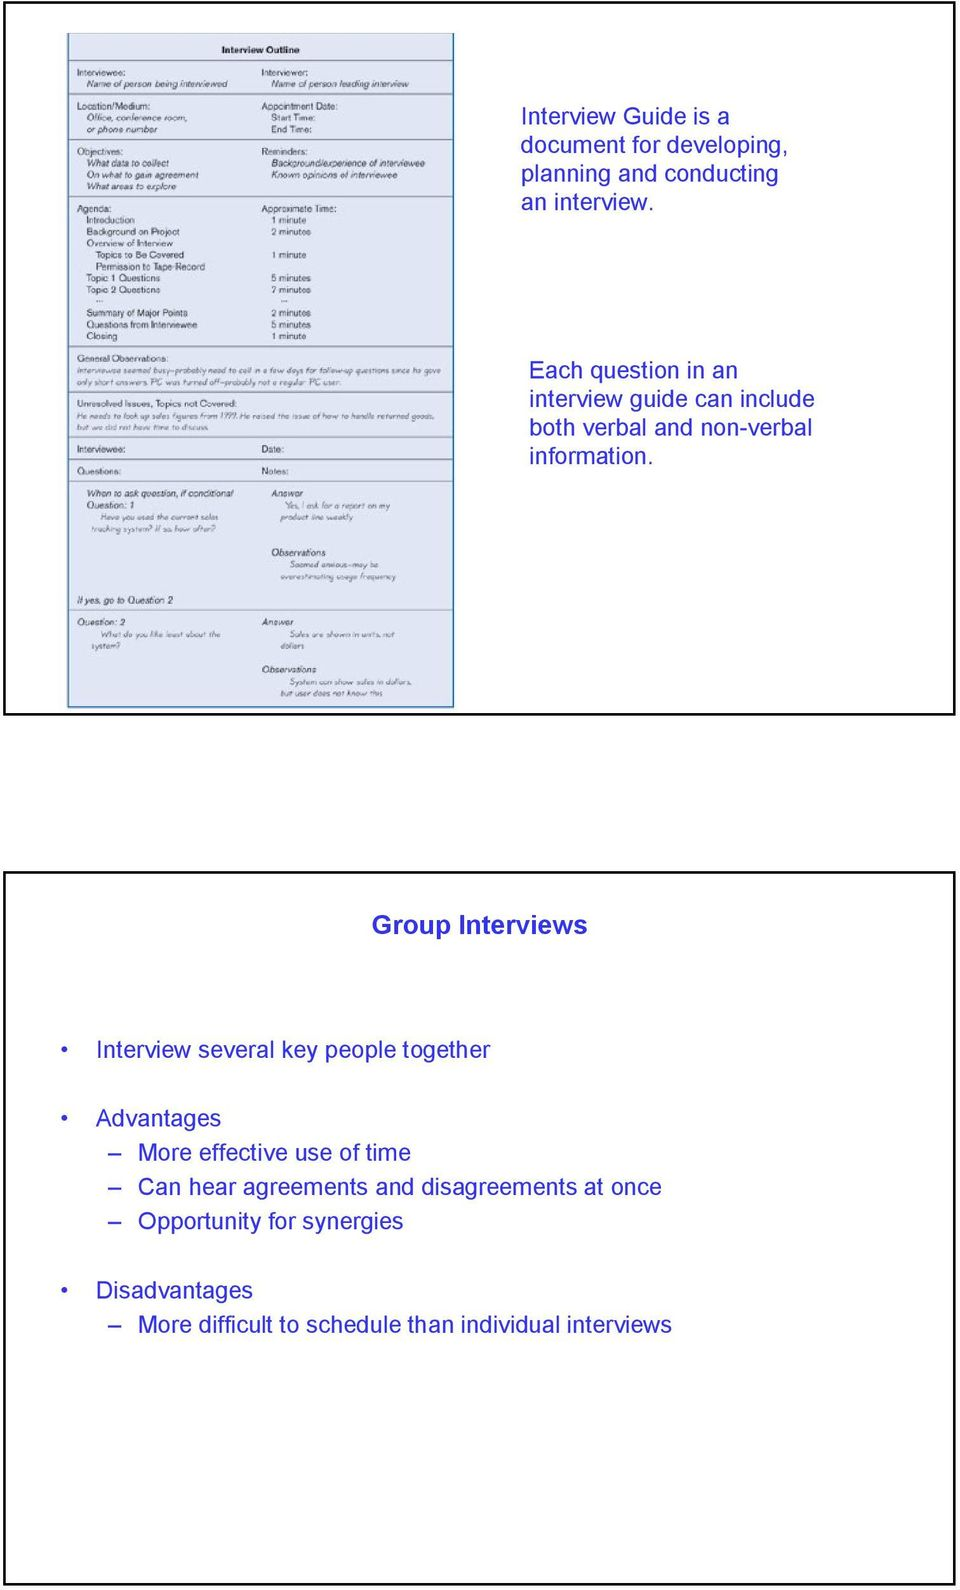 Group Interviews Interview several key people together Advantages More effective use of time Can